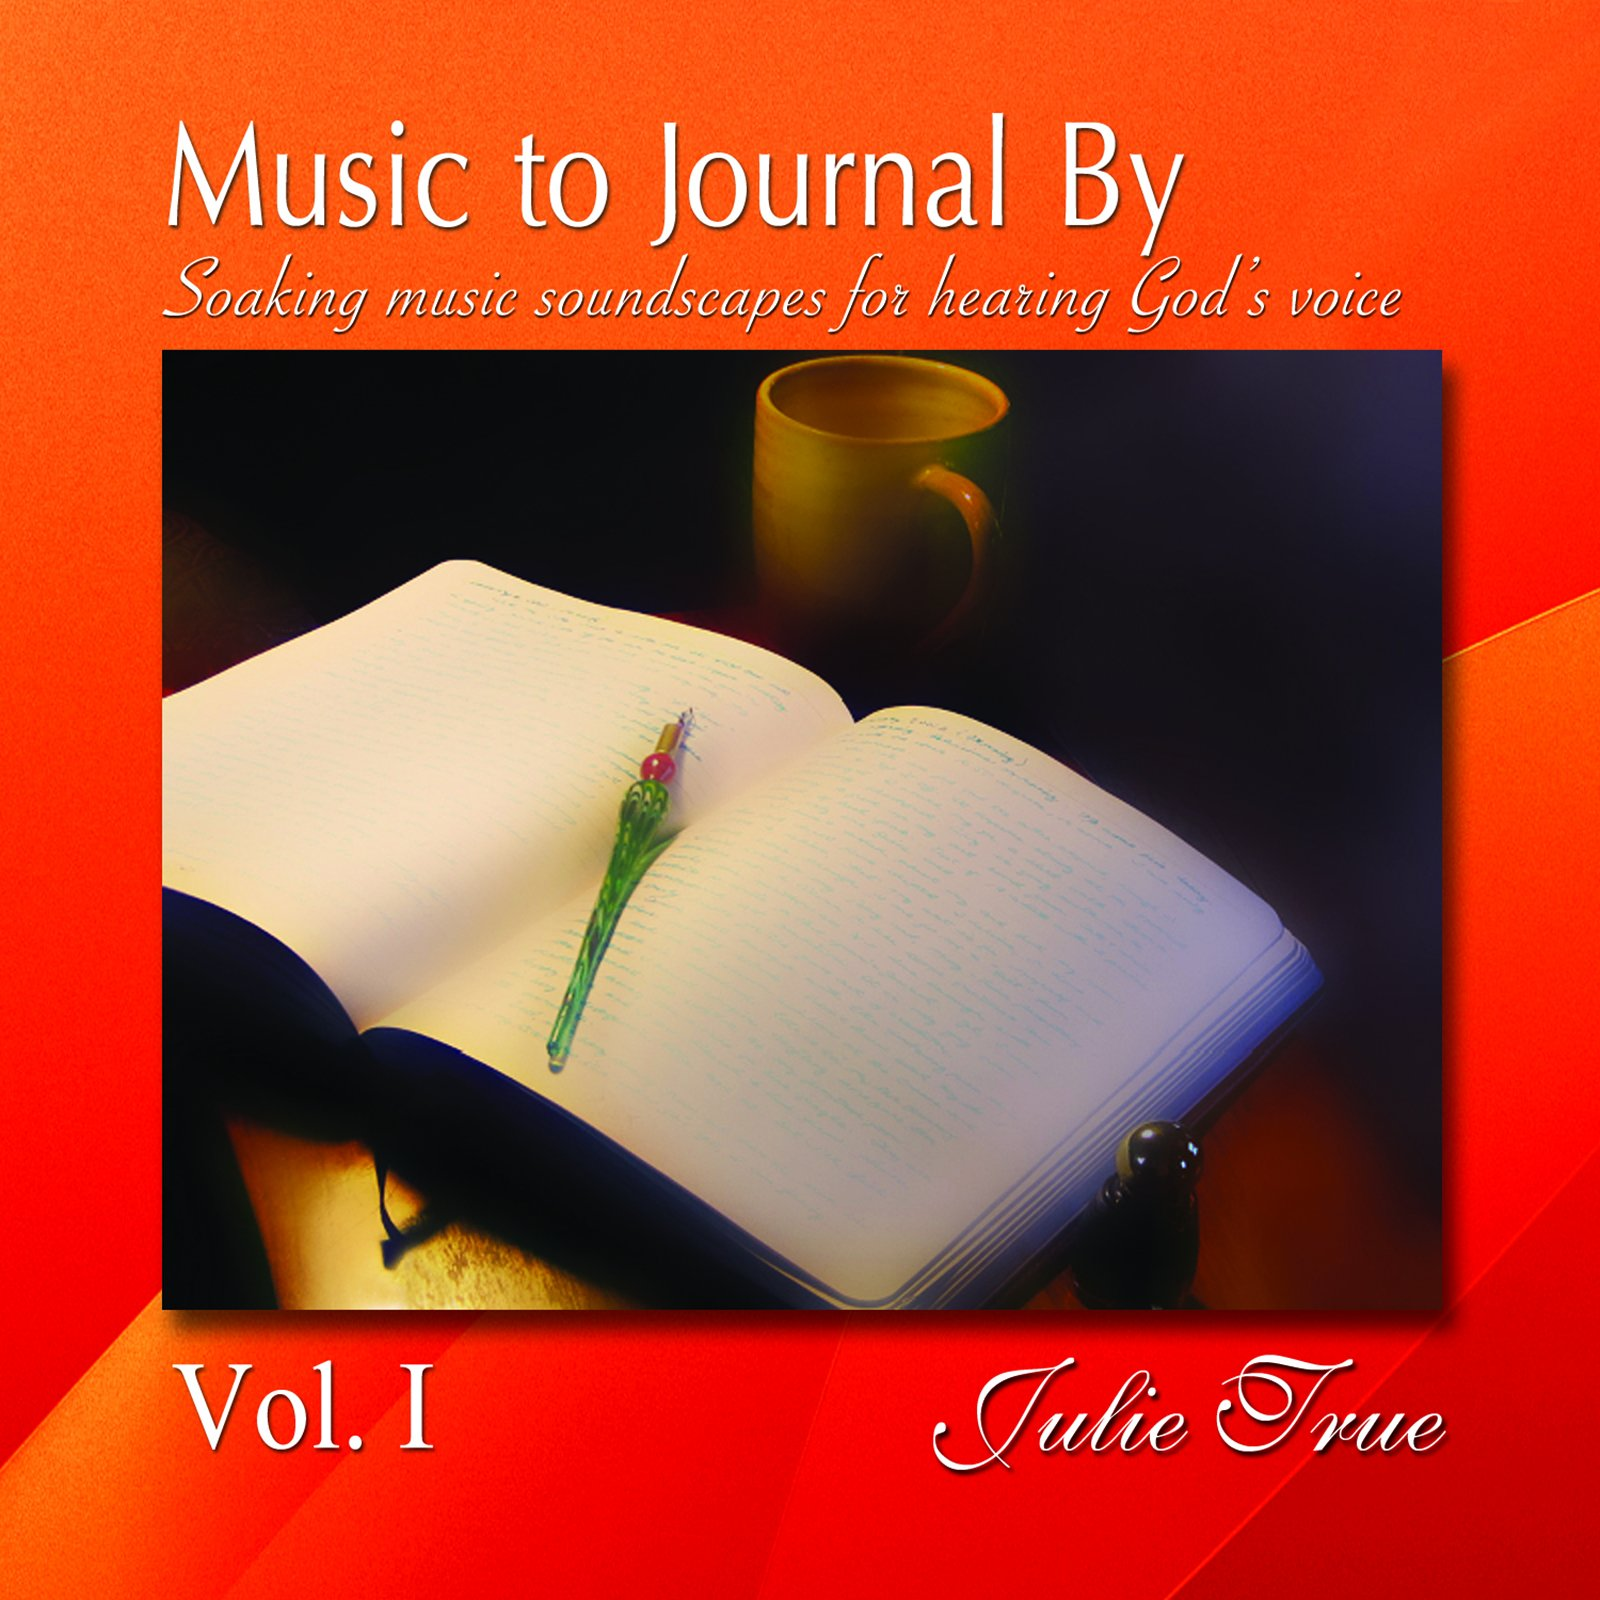 Music to Journal By Vol. I - Soaking Music Soundscapes for Hearing God's Voice by Trueheart Worship